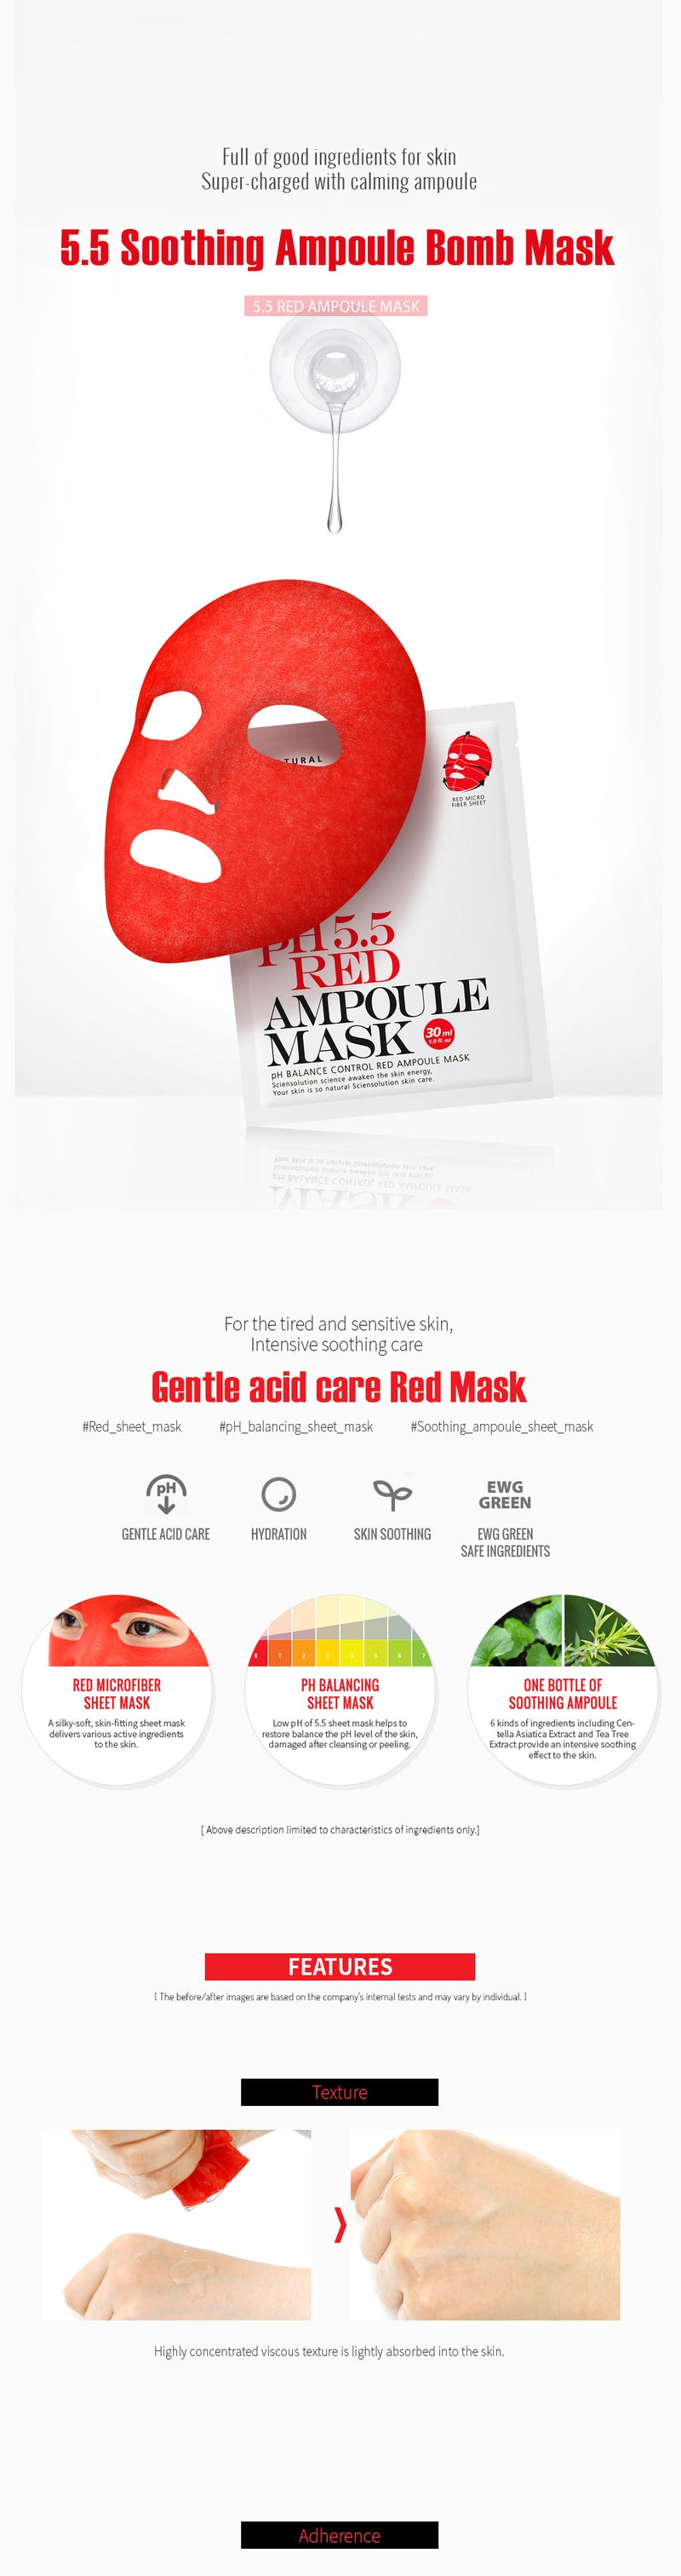 PH 5.5 RED AMPOULE MASK